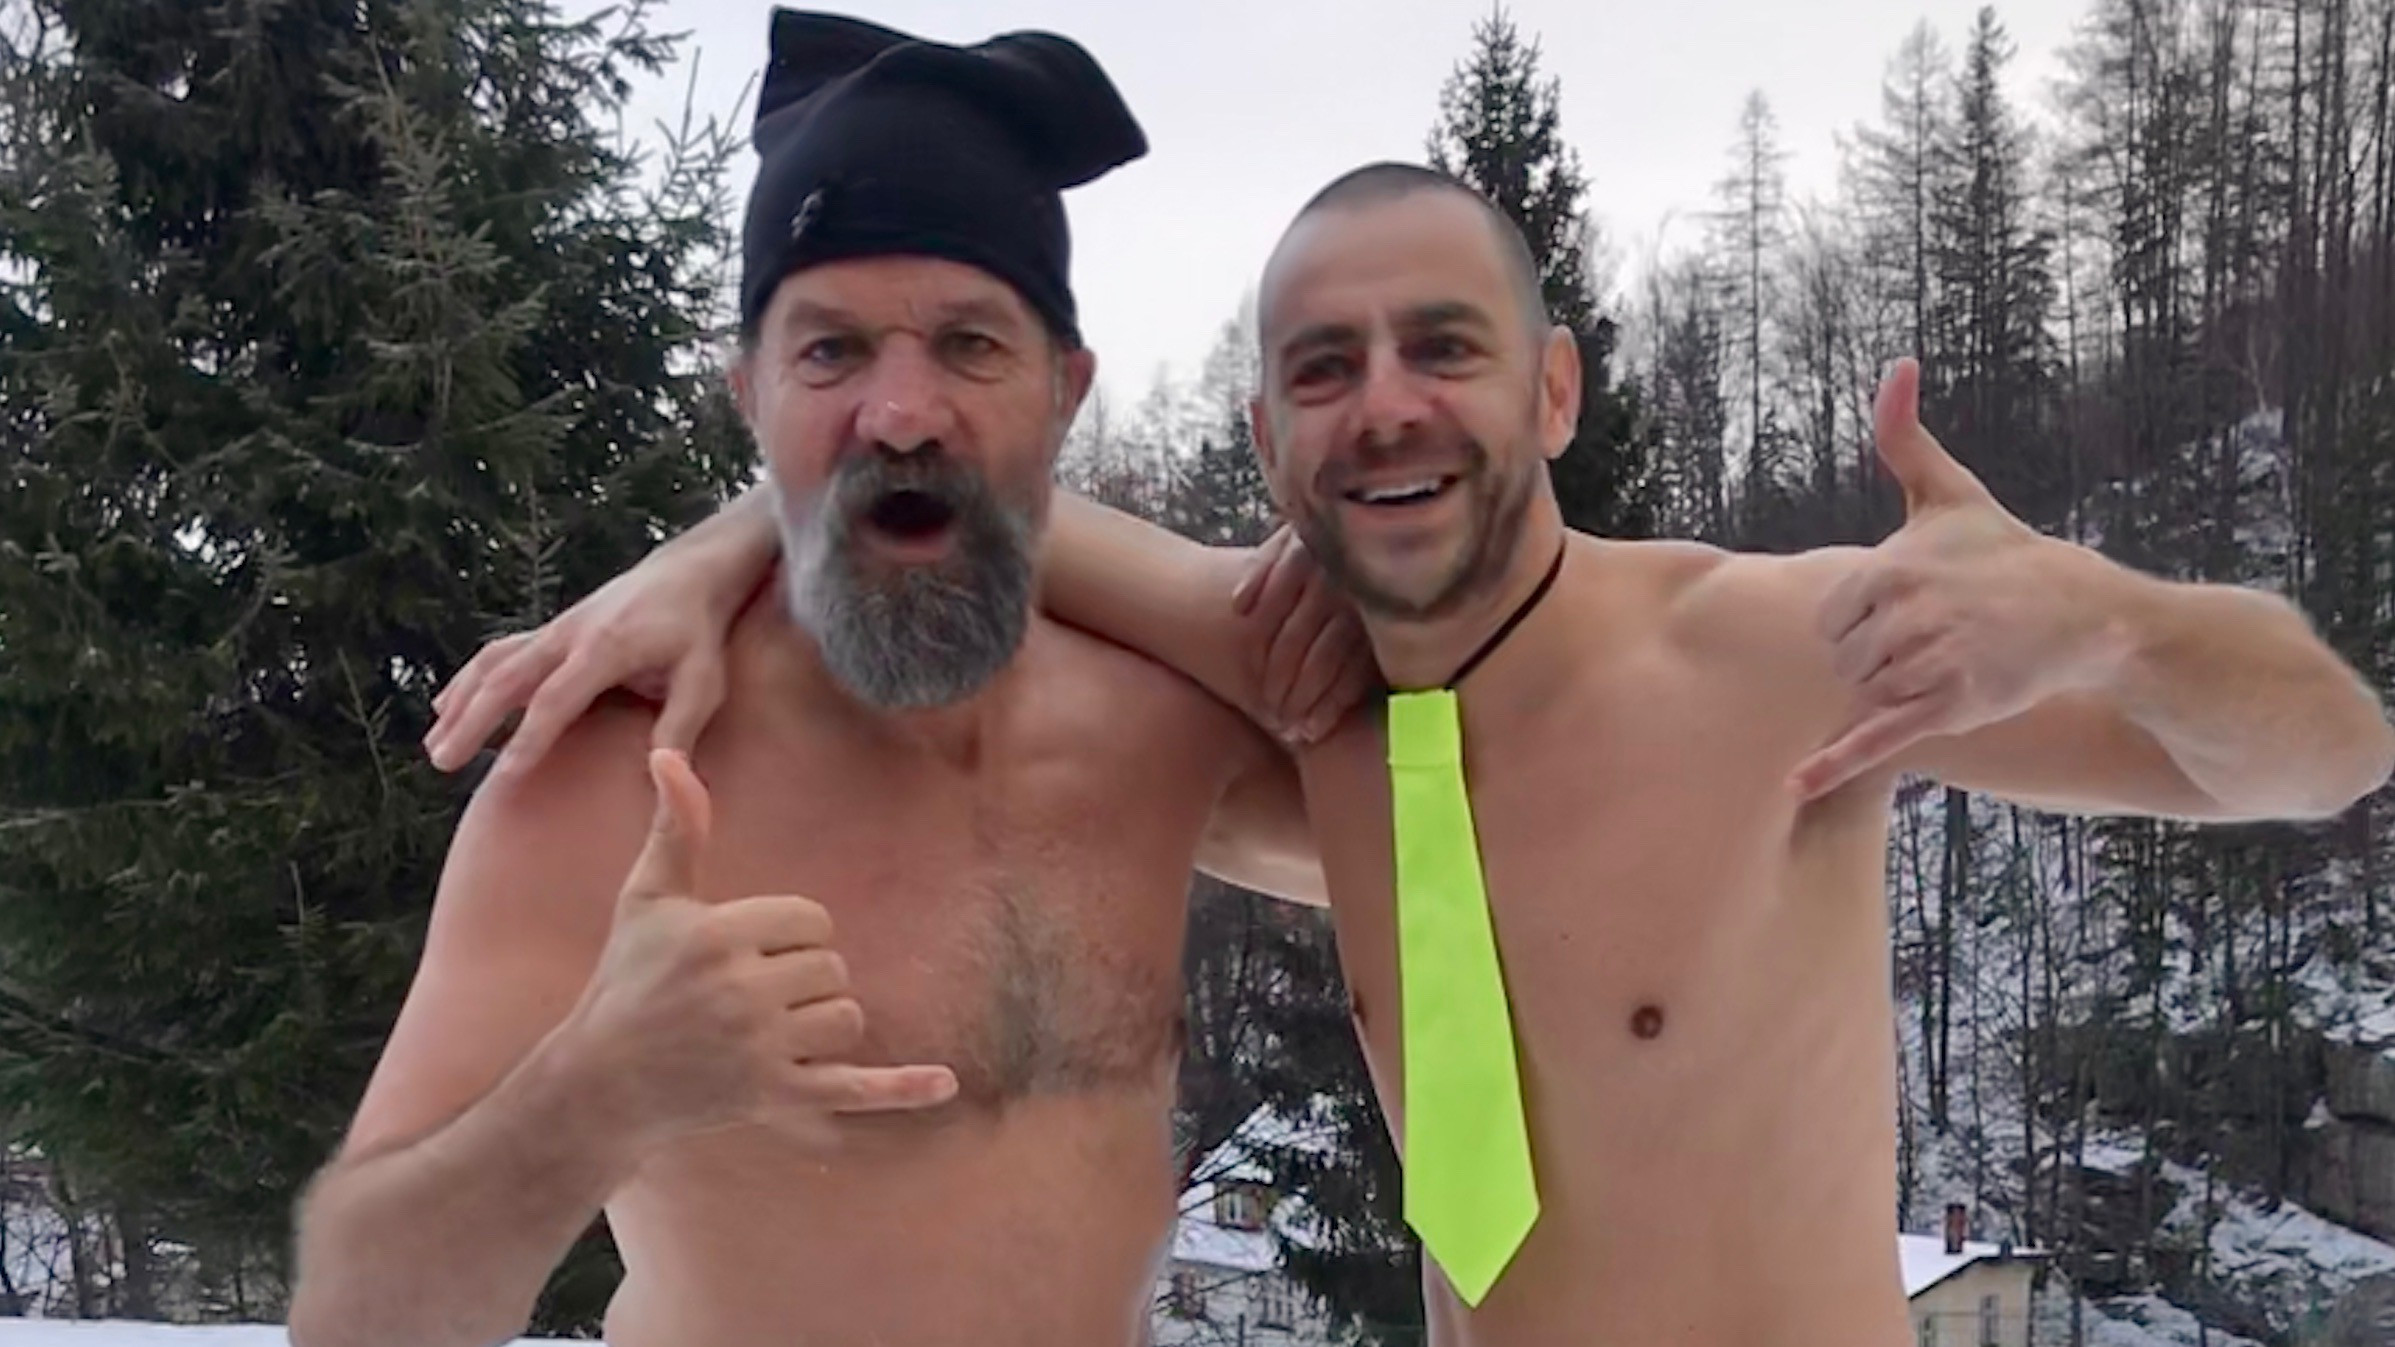 Image 25 of 27 - Experience the Wim Hof Method to get an impression of  at